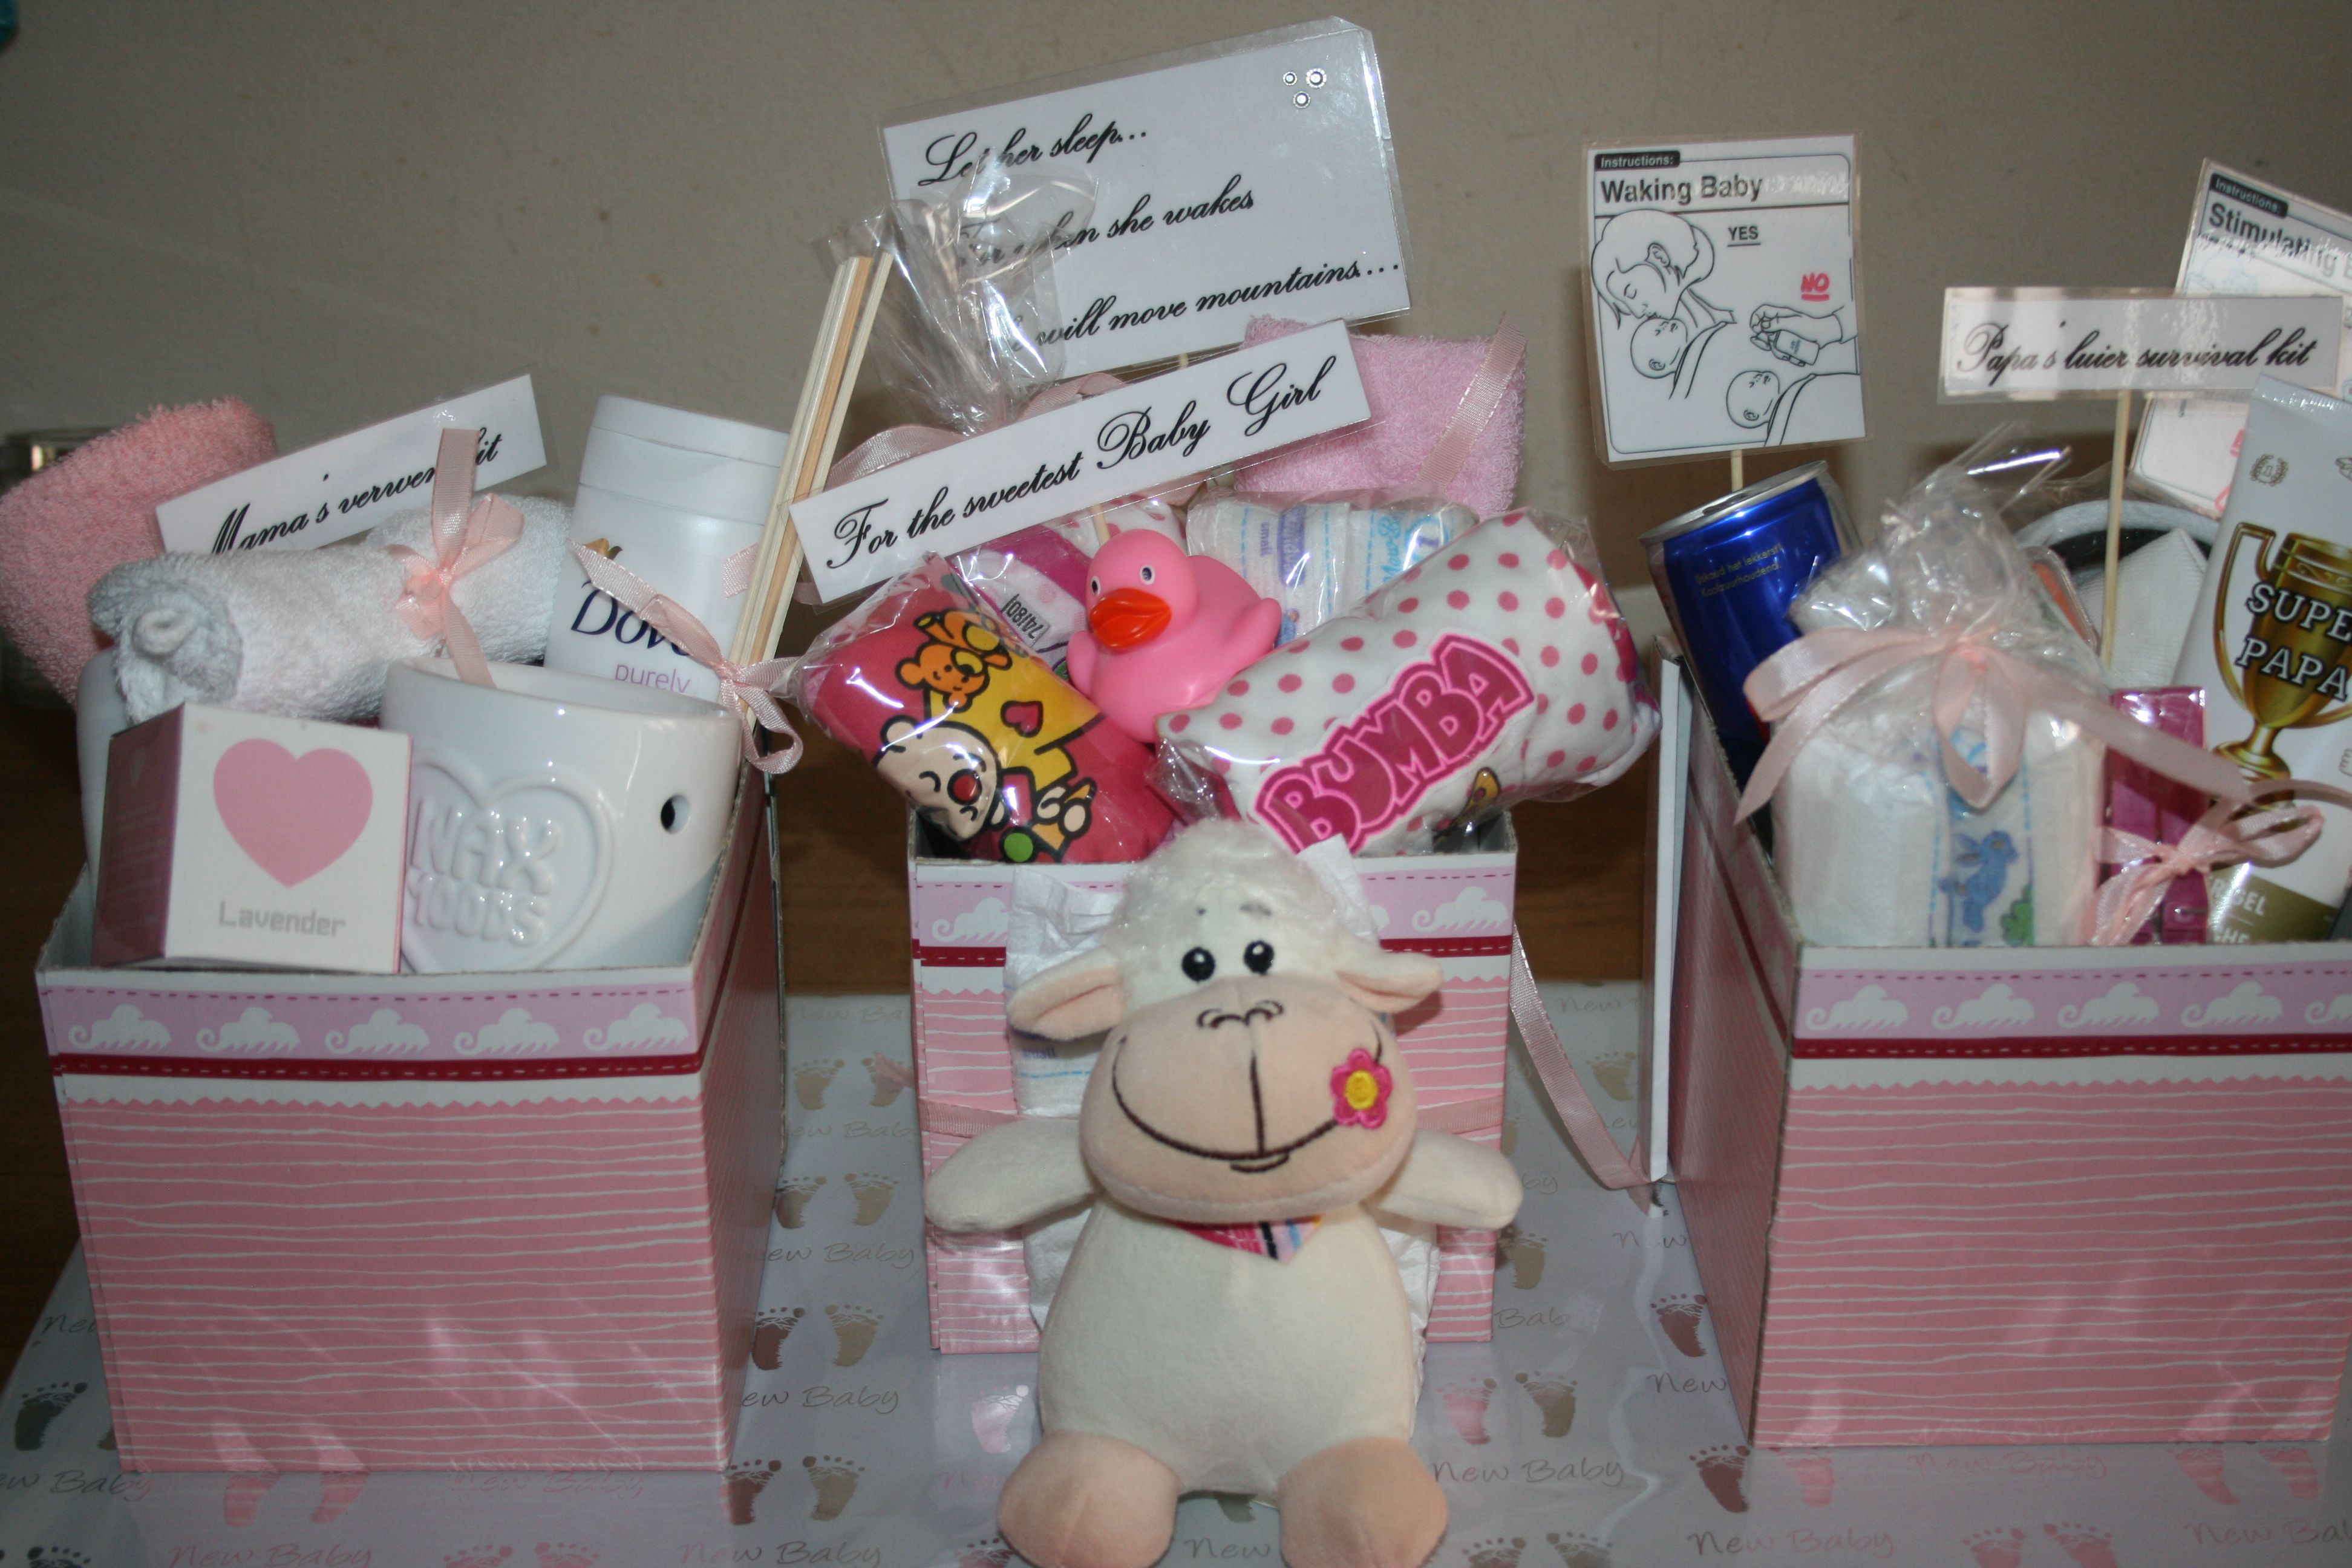 Babyshower gift....three boxes filled with presents for mum,baby and dad!